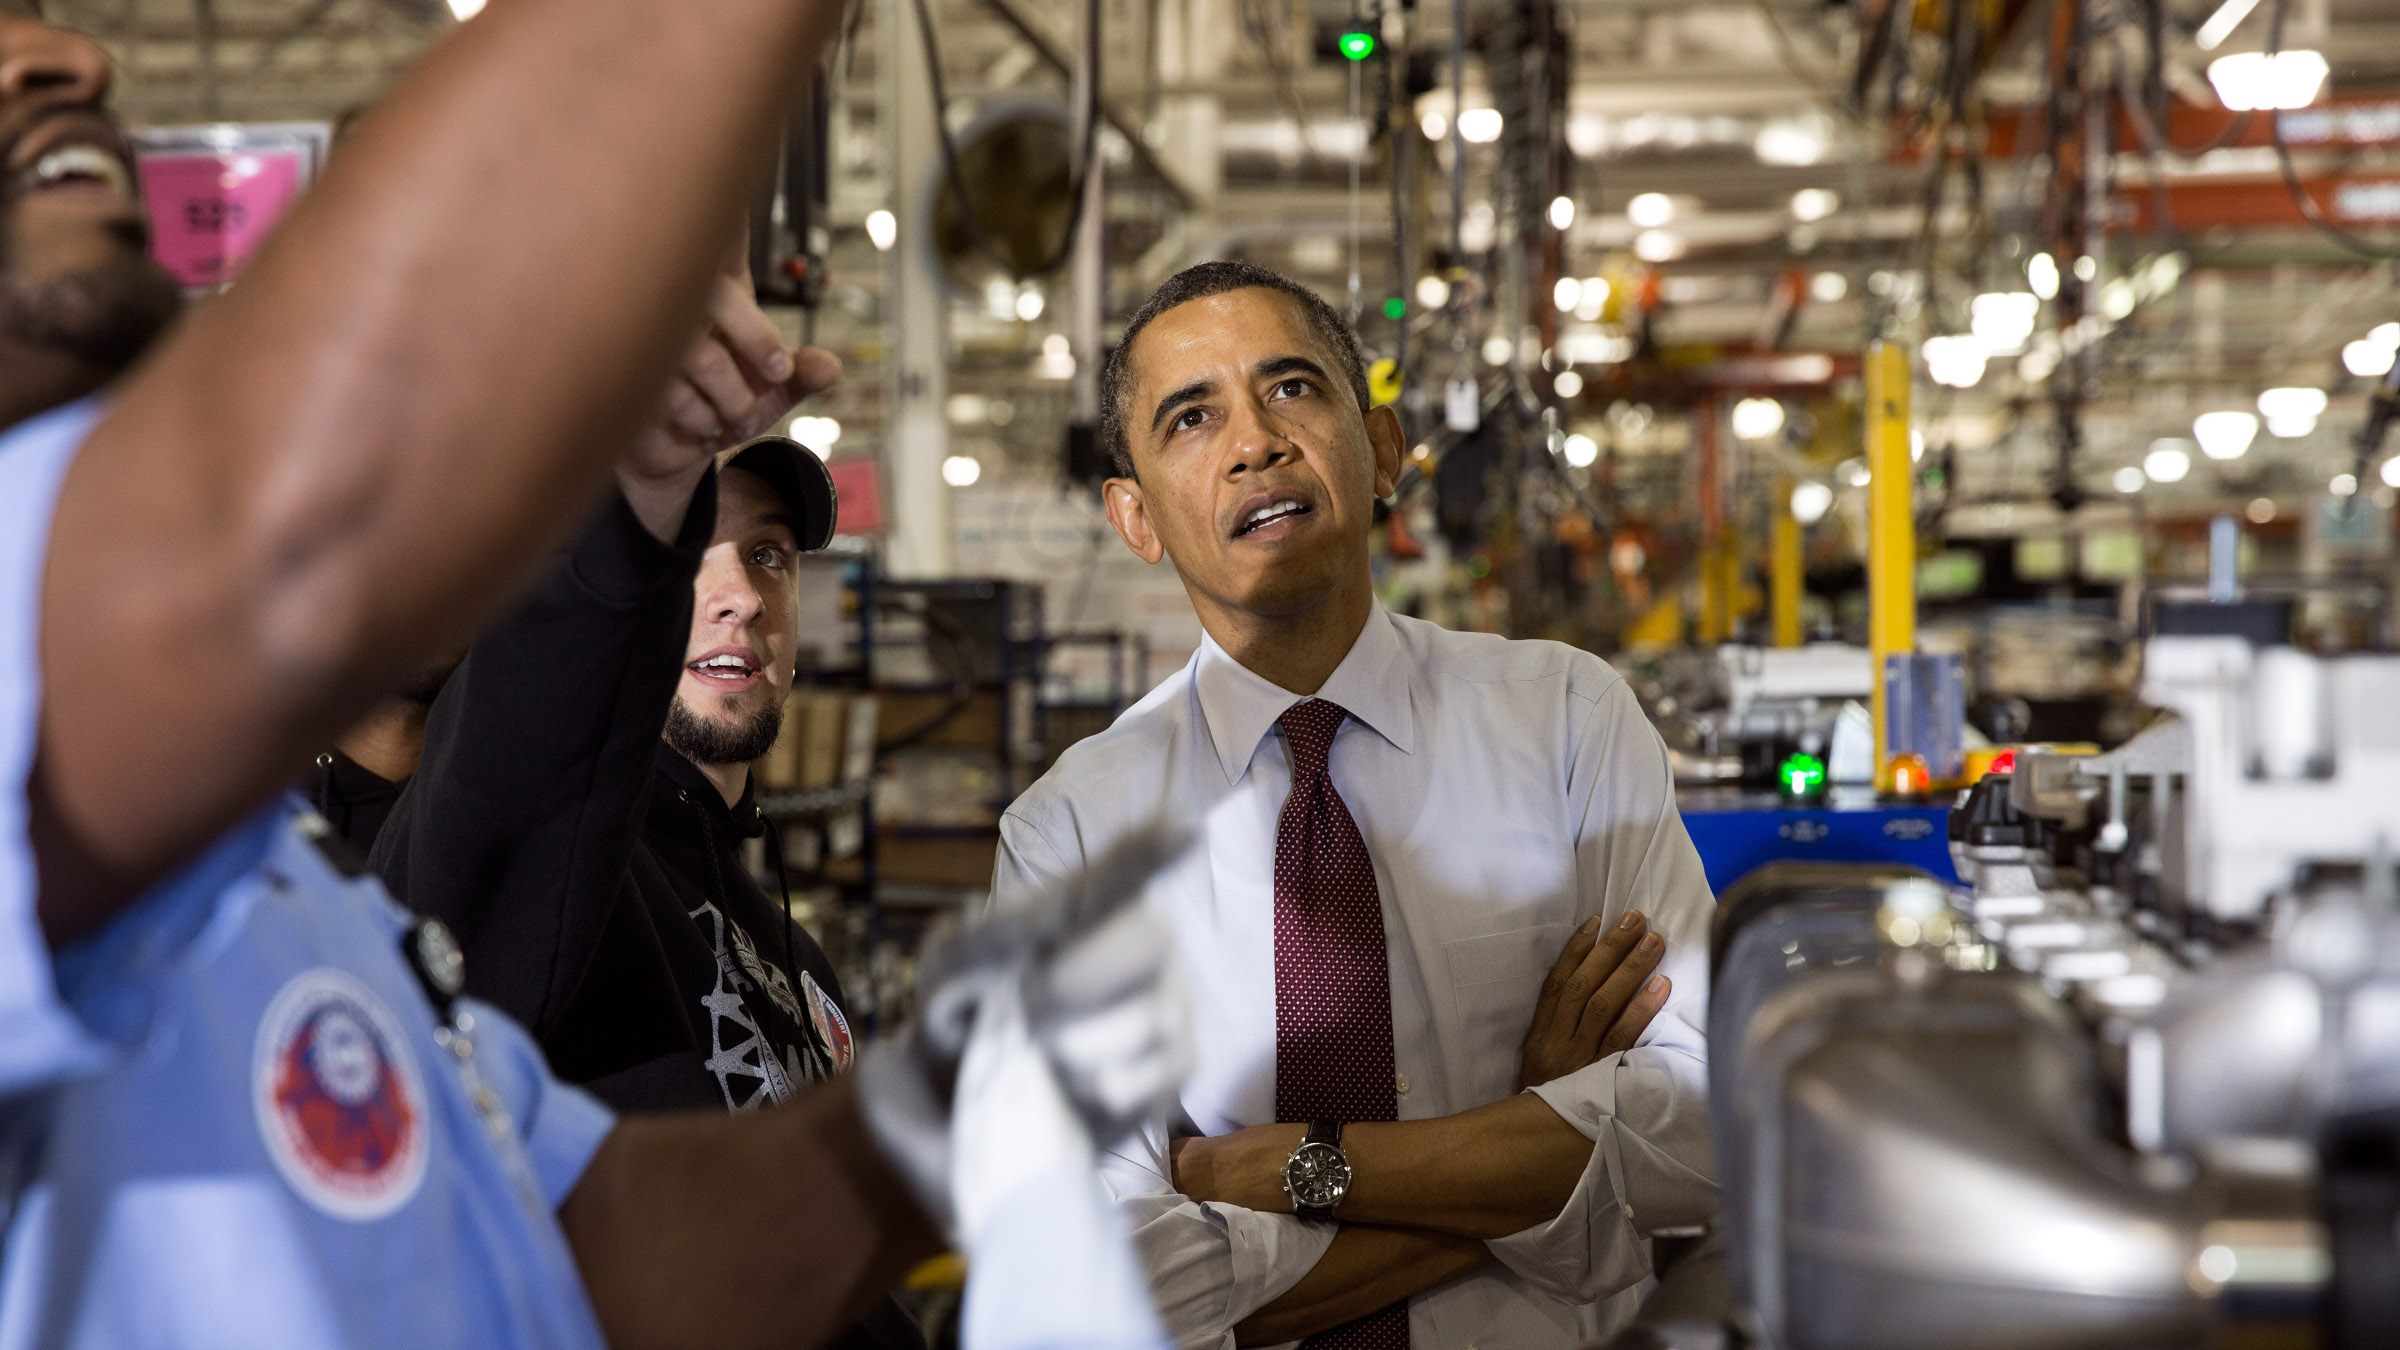 """President Barack Obama has a tour of the Daimler Detroit Diesel Facility in Redford, Michigan, Dec. 10, 2012. Tour guides are: Jeff Allen, Detroit Diesel, VP of Operations & Plant Manager; Mark """"Gibby"""" Gibson, UAW – NW Local 163 DCC Shop Chairperson (Engine Group). Station Three – Turbo Install: Four workers and a supervisor explain the process undertaken here."""